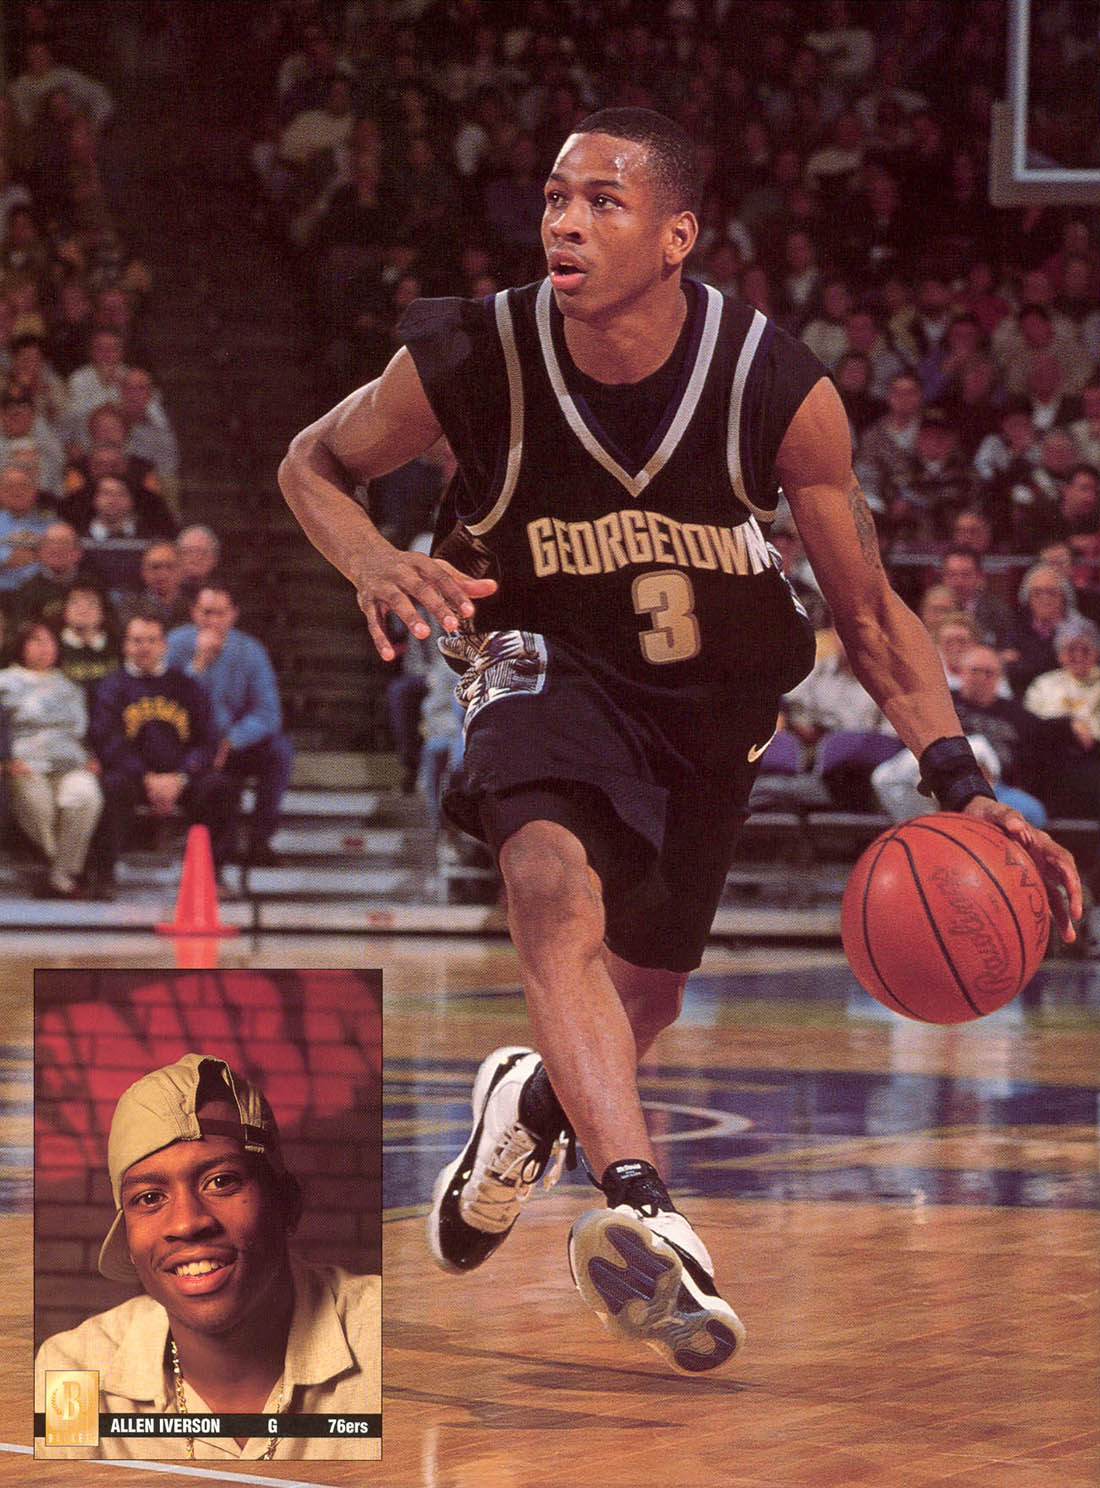 a biography of allen iverson a basketball player Allen iverson net worth 2018 | salary allen iverson biography he is a retired professional basketball player who took the point guard and shooting guard.